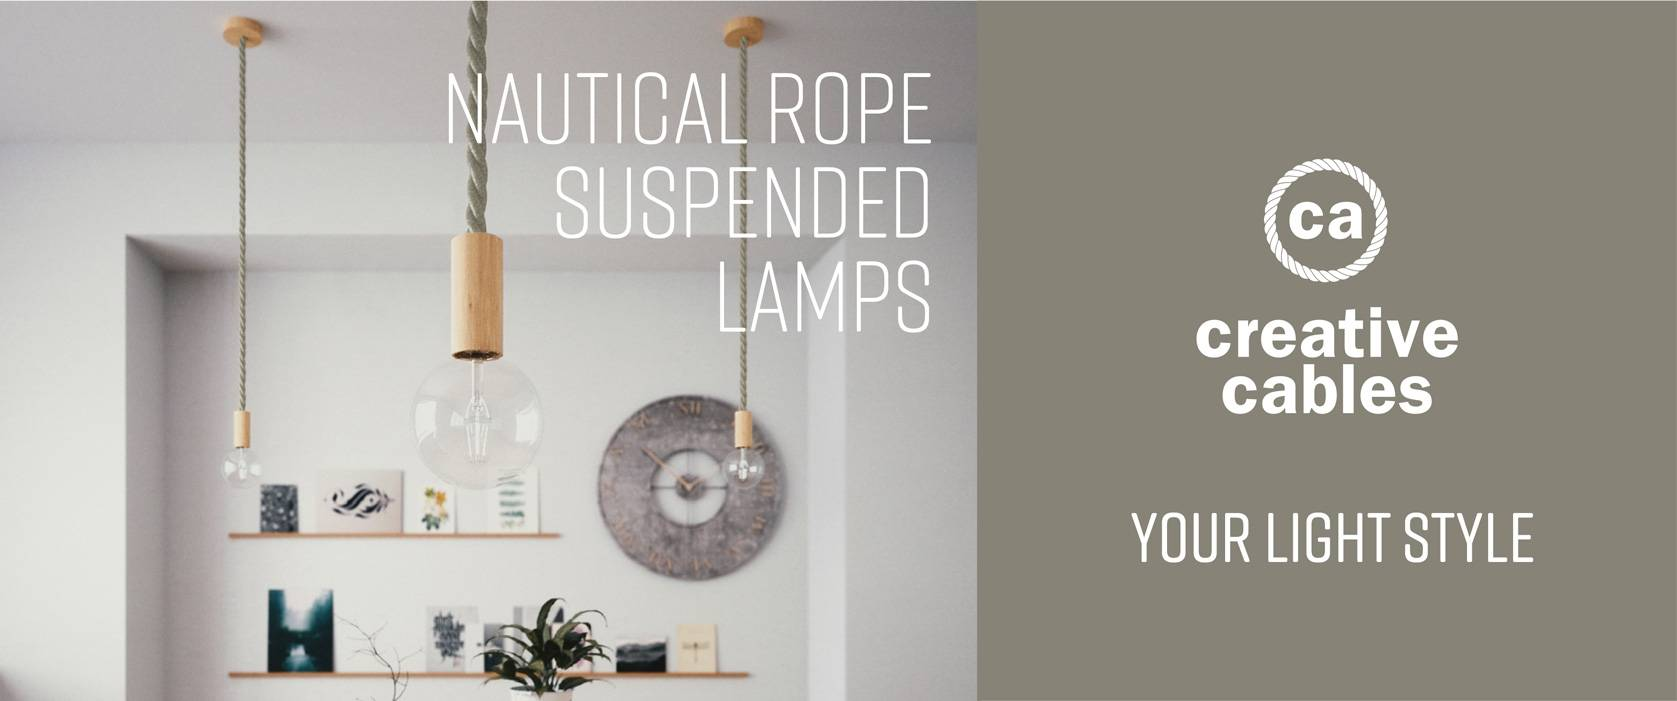 Nautical rope suspended lamp